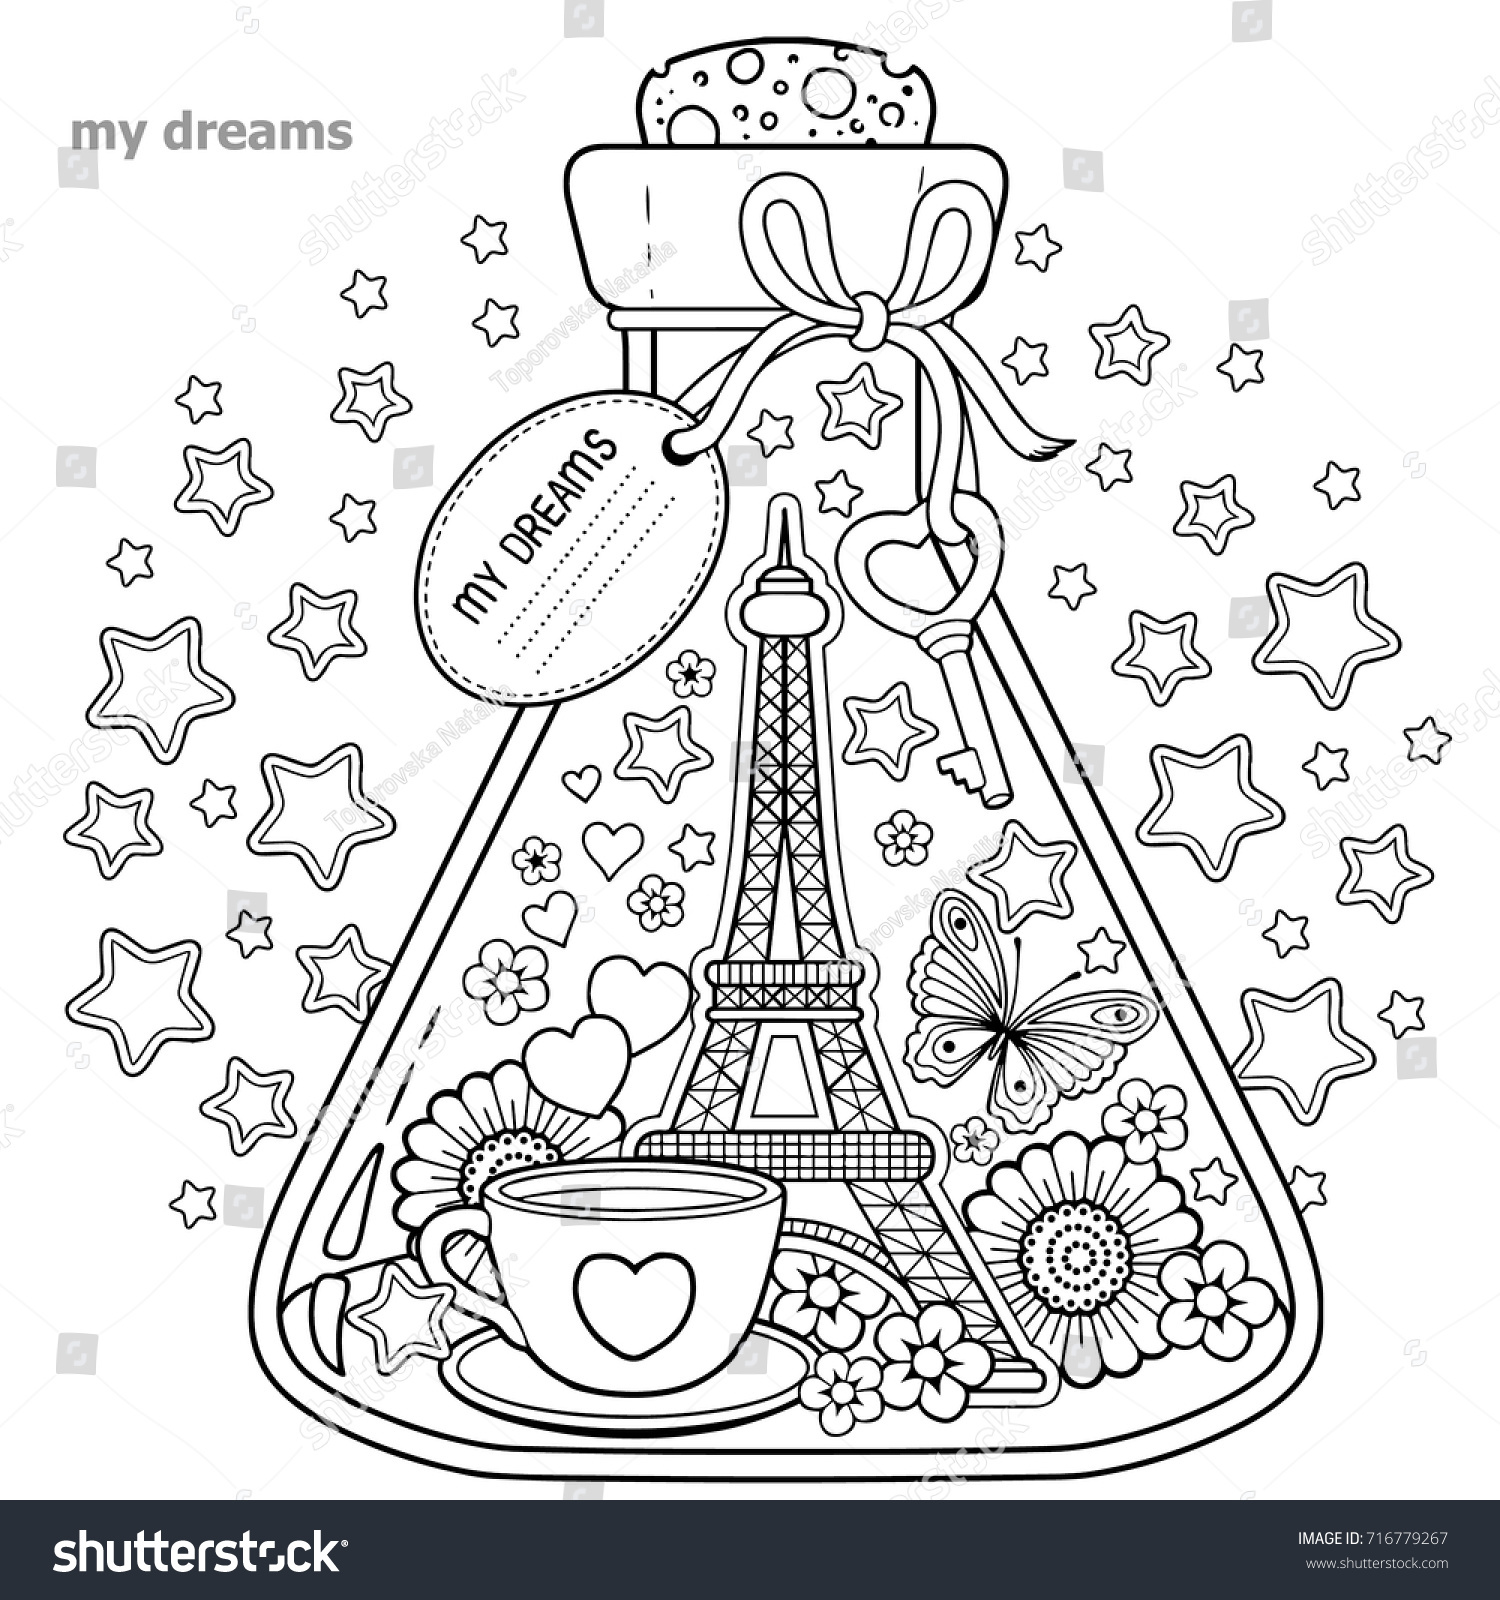 vector coloring book for adults a glass vessel with dreams of traveling to paris - Paris Coloring Book